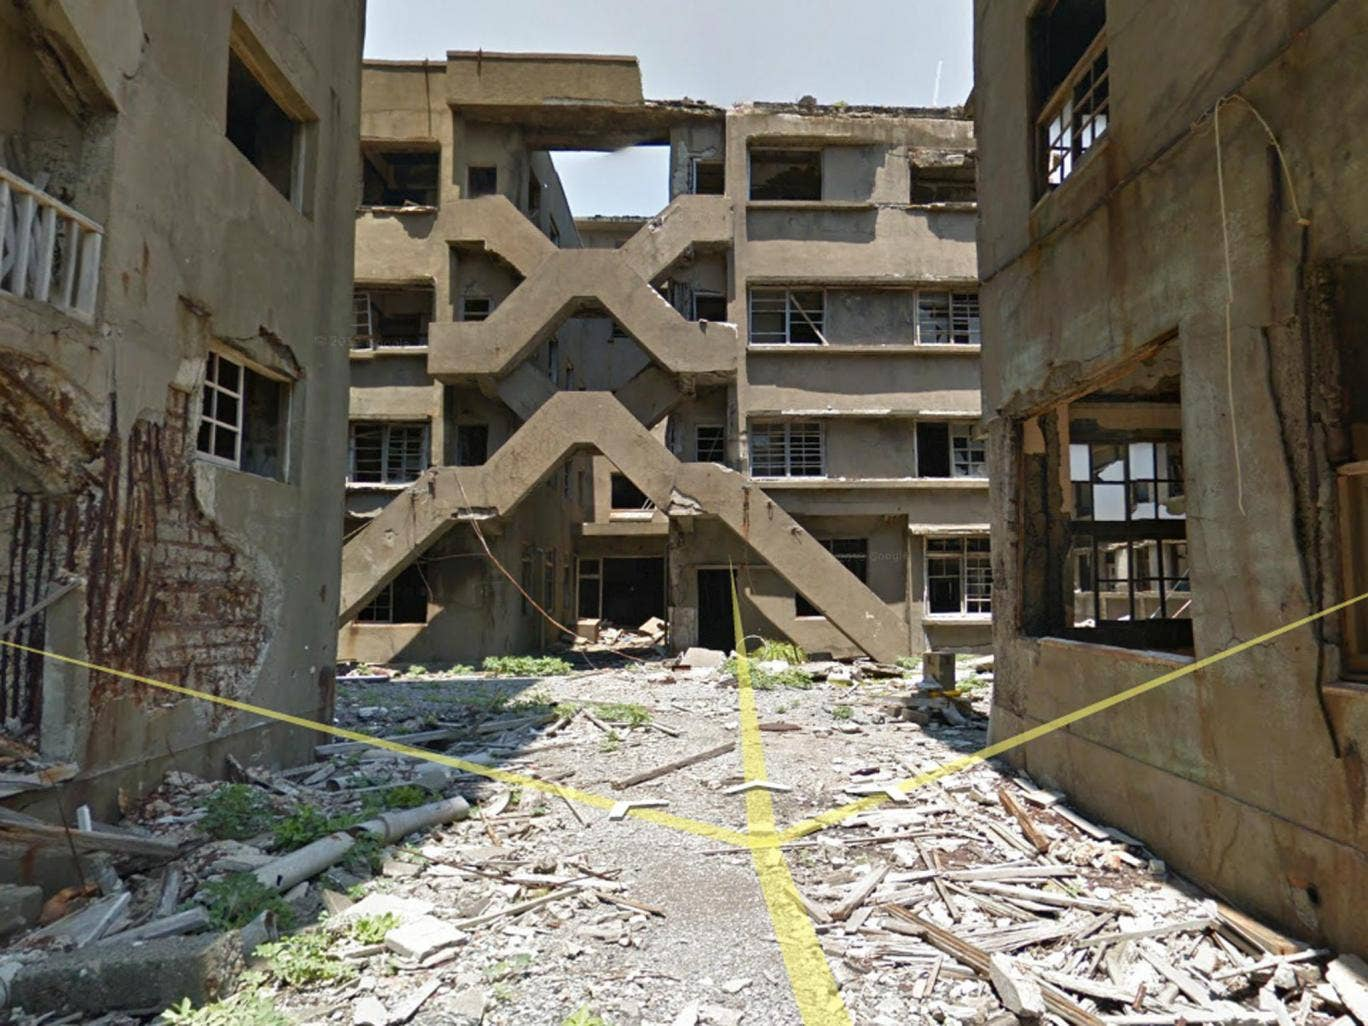 Hashima Island is a former industrial town that was abandoned after Mitsubishi closed the final remaining coal mine in 1974